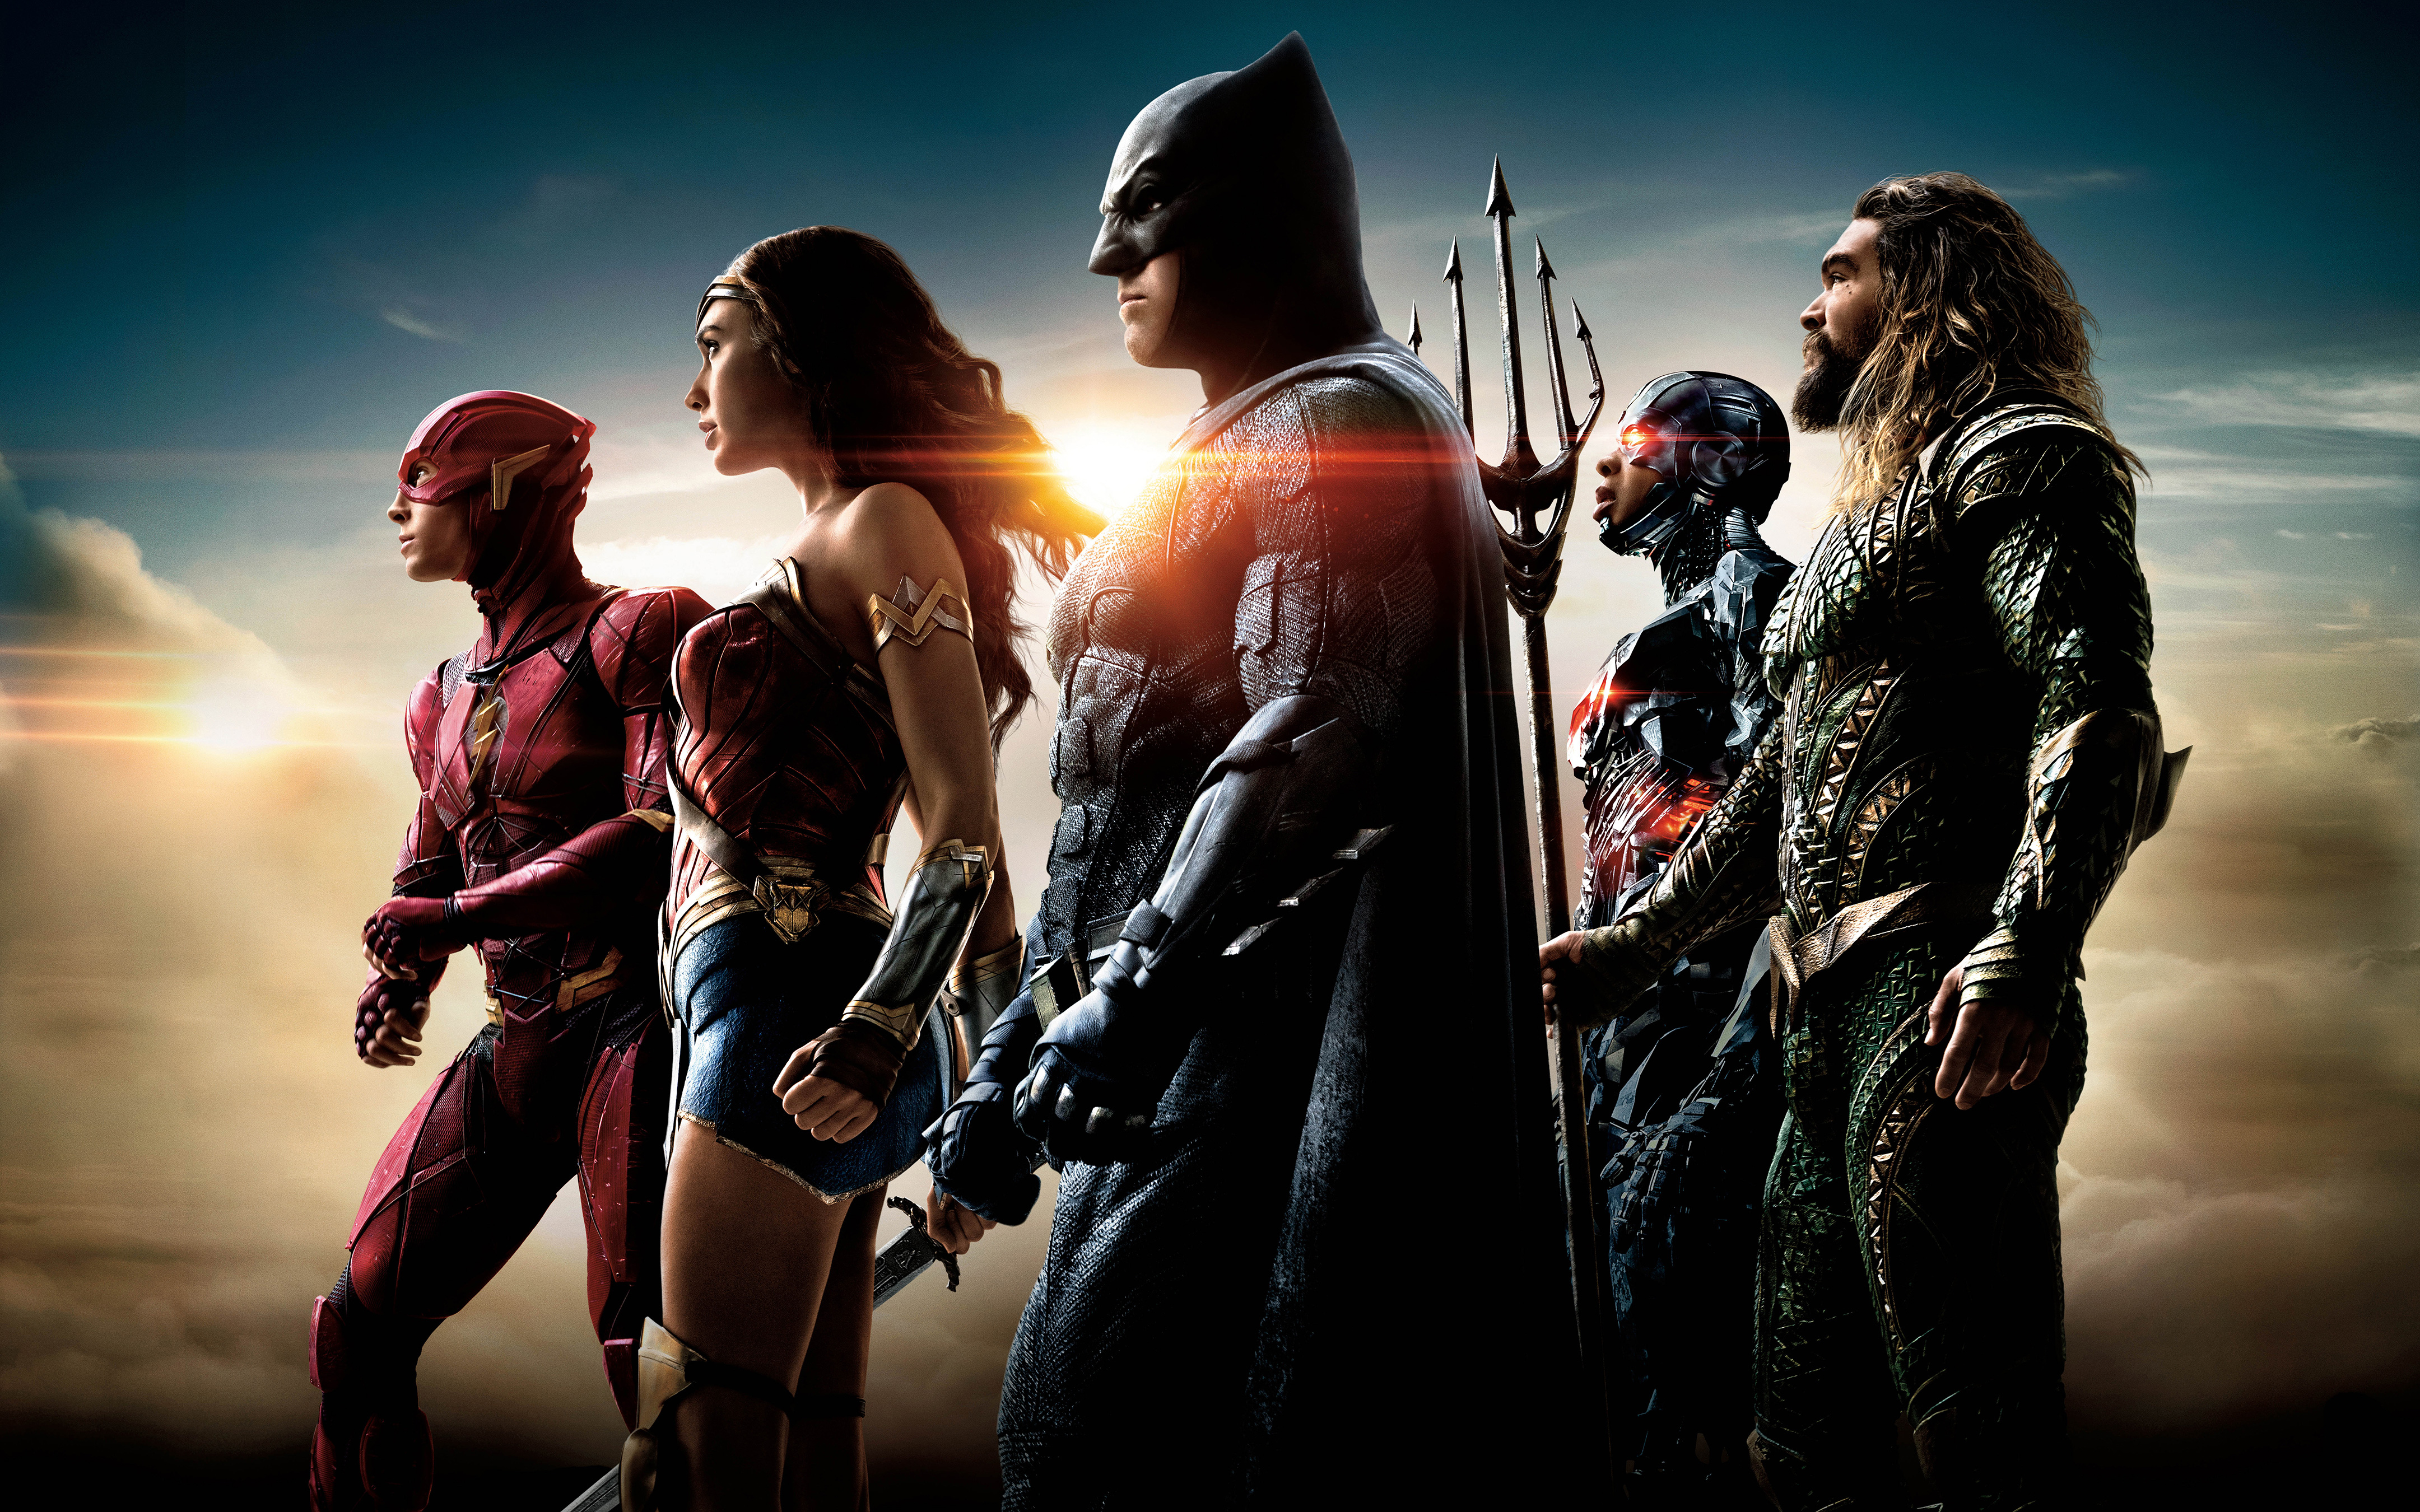 justice league (2017) 4k ultra hd wallpaper | background image